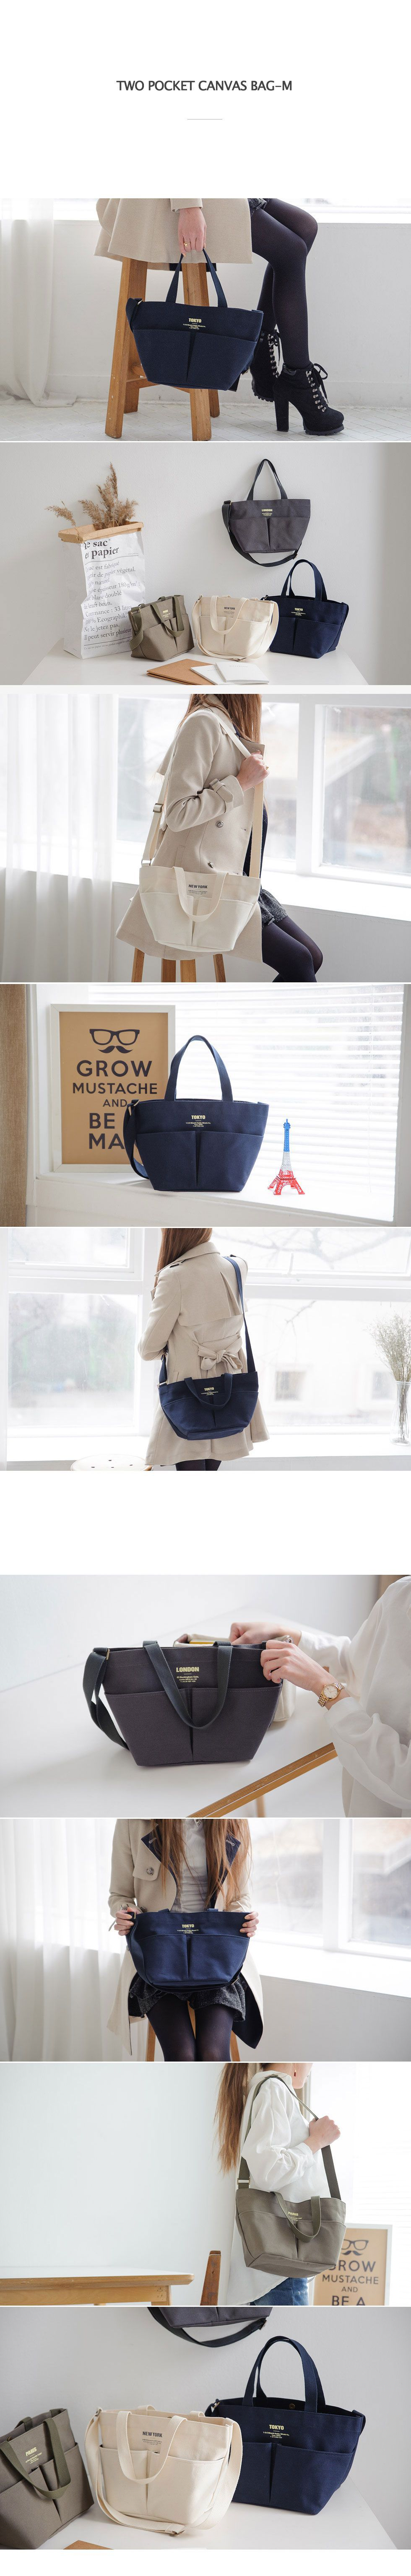 Two Pocket Canvas Bag-M